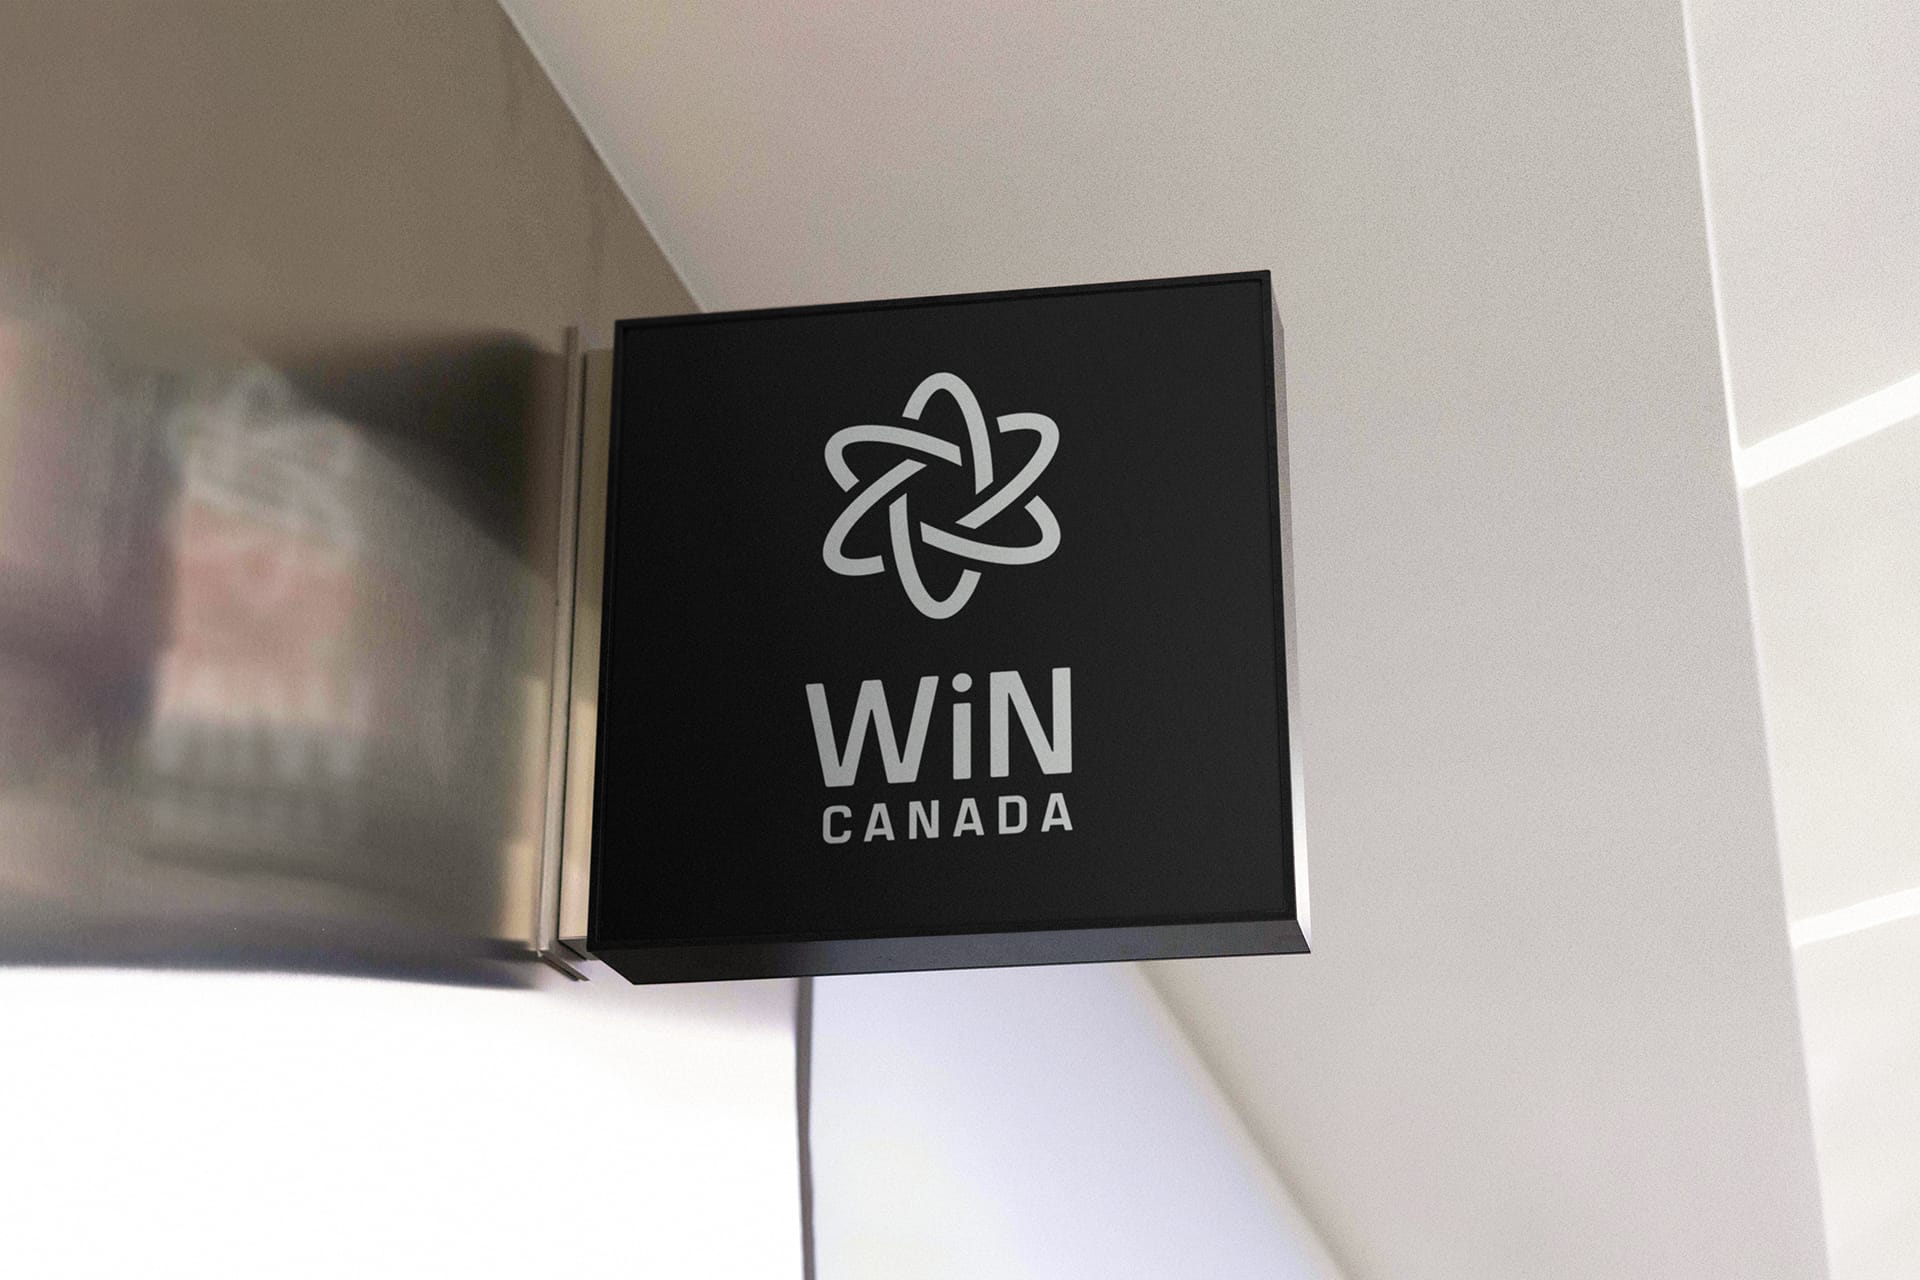 WiN Canada - Sign Design